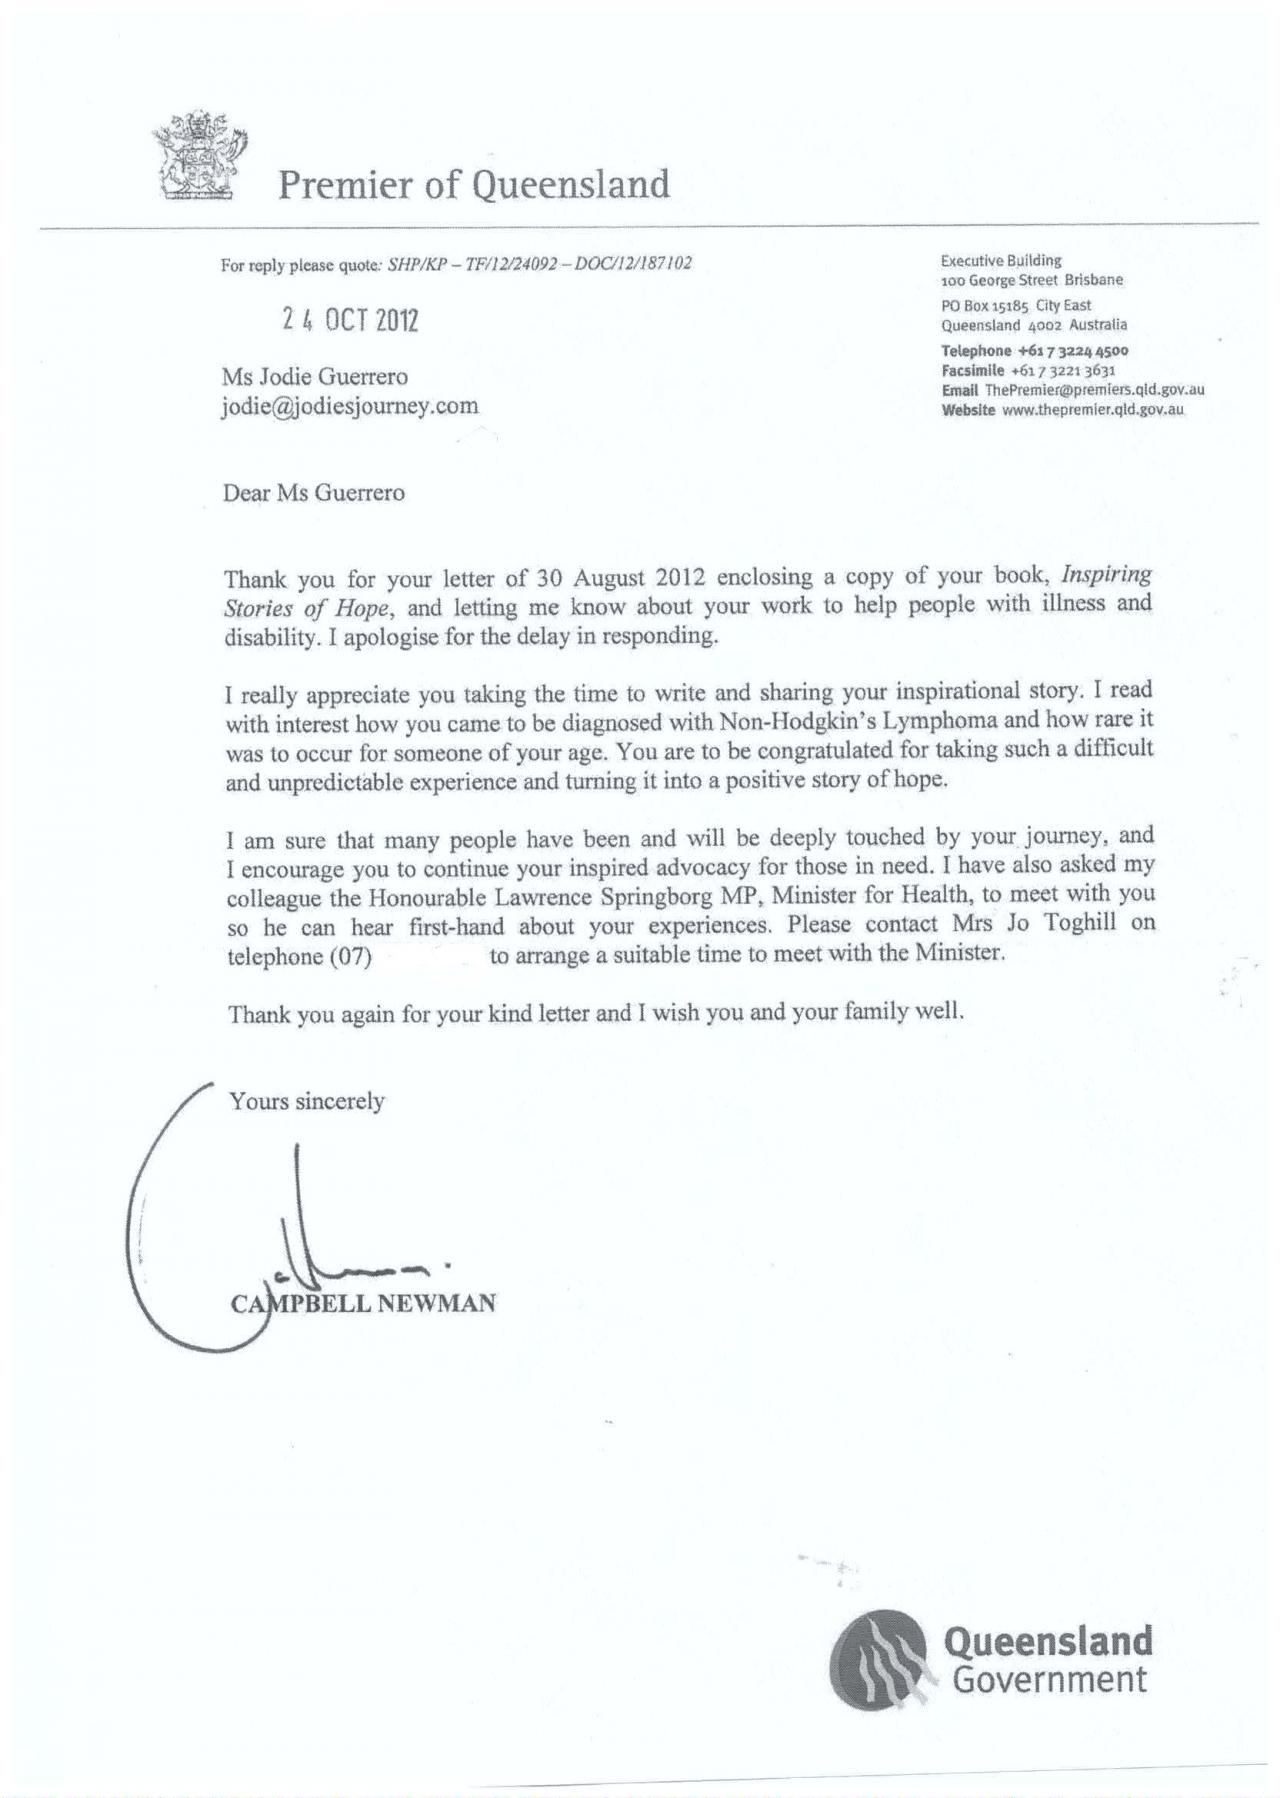 Letter From The Premier Of Queensland To Jodie